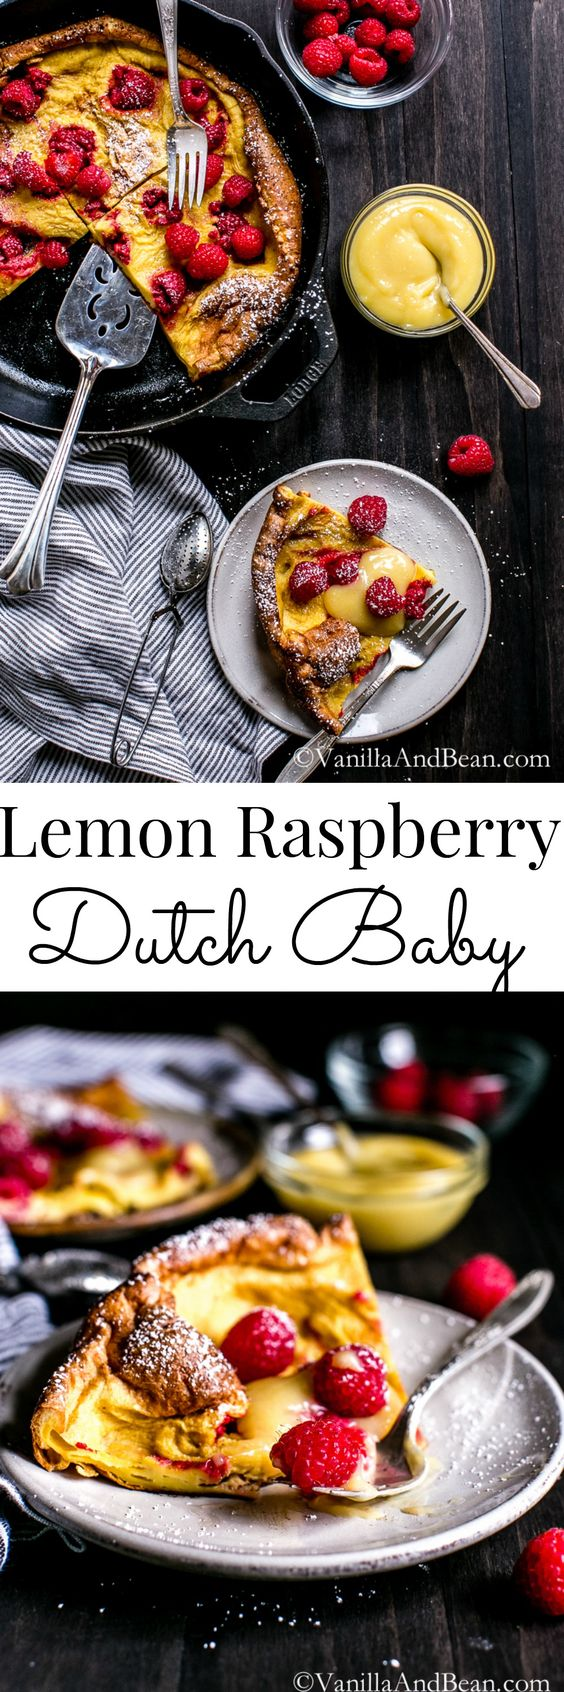 ... Lemon Raspberry Dutch Baby with an Easy Lemon Curd | Vanilla And Bean